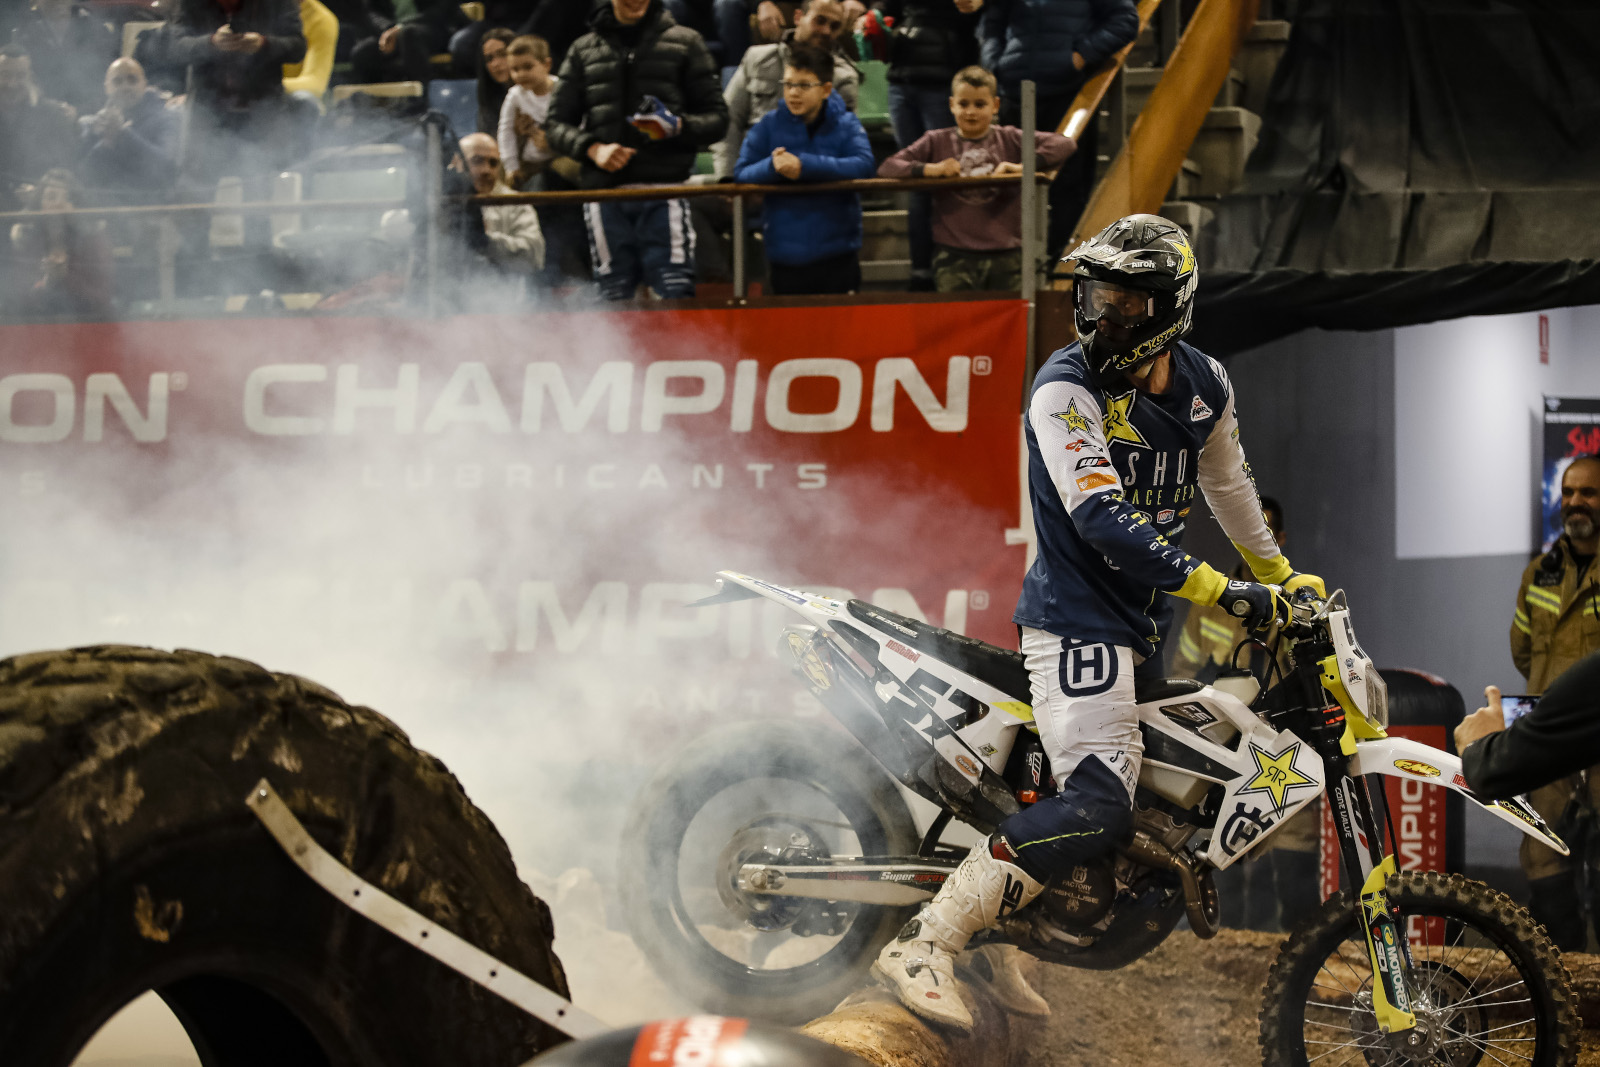 Interview: Billy Bolt on winning the 2020 SuperEnduro World Championship